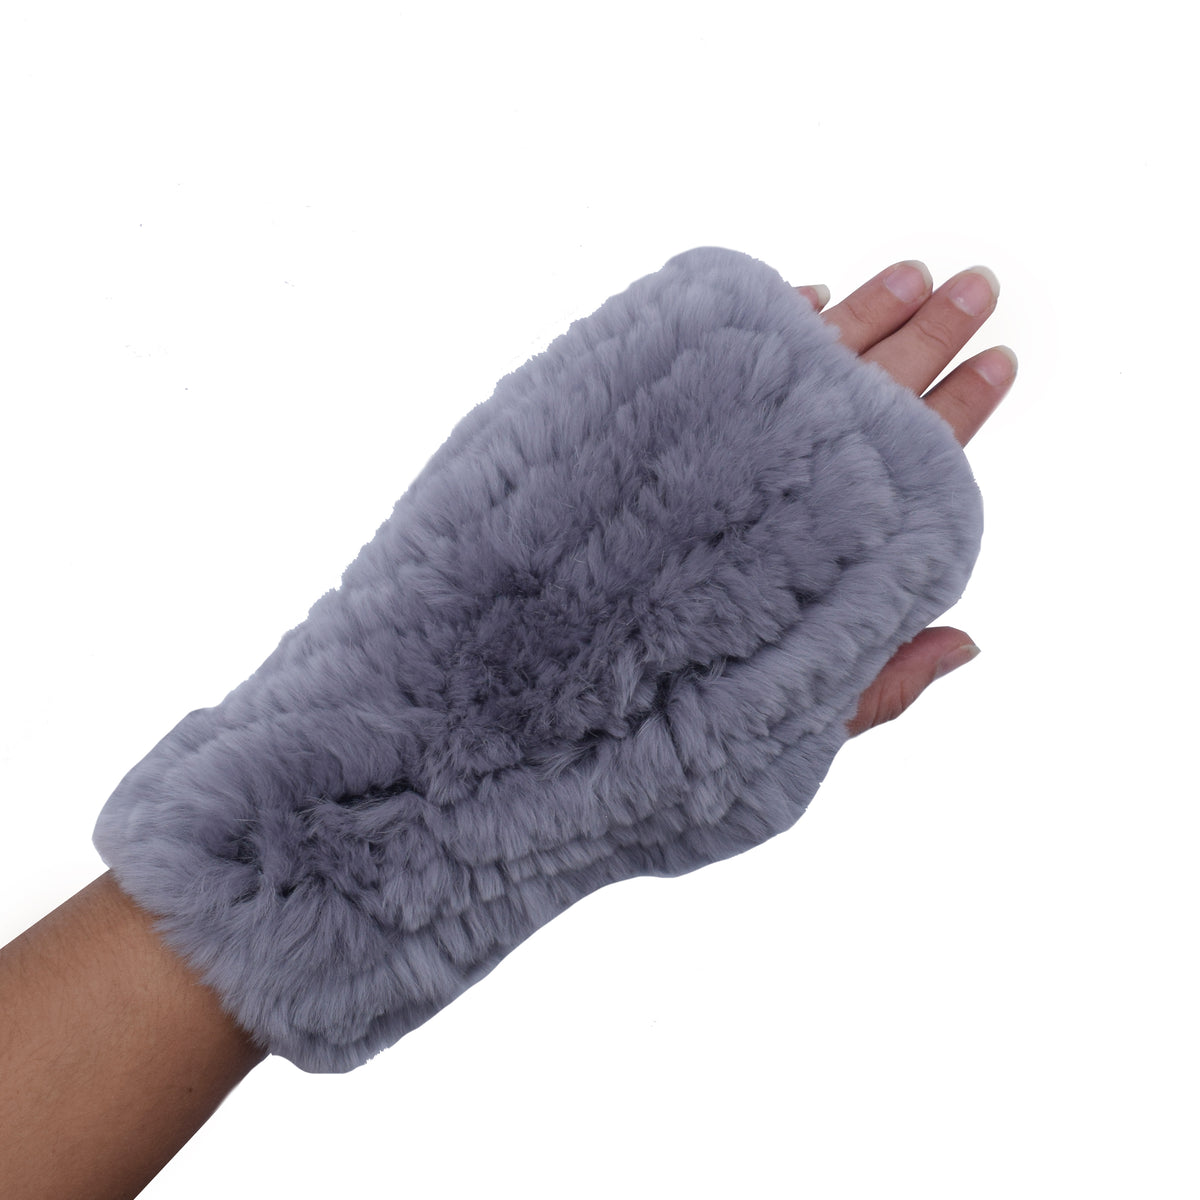 Black Fur Hand Warmers